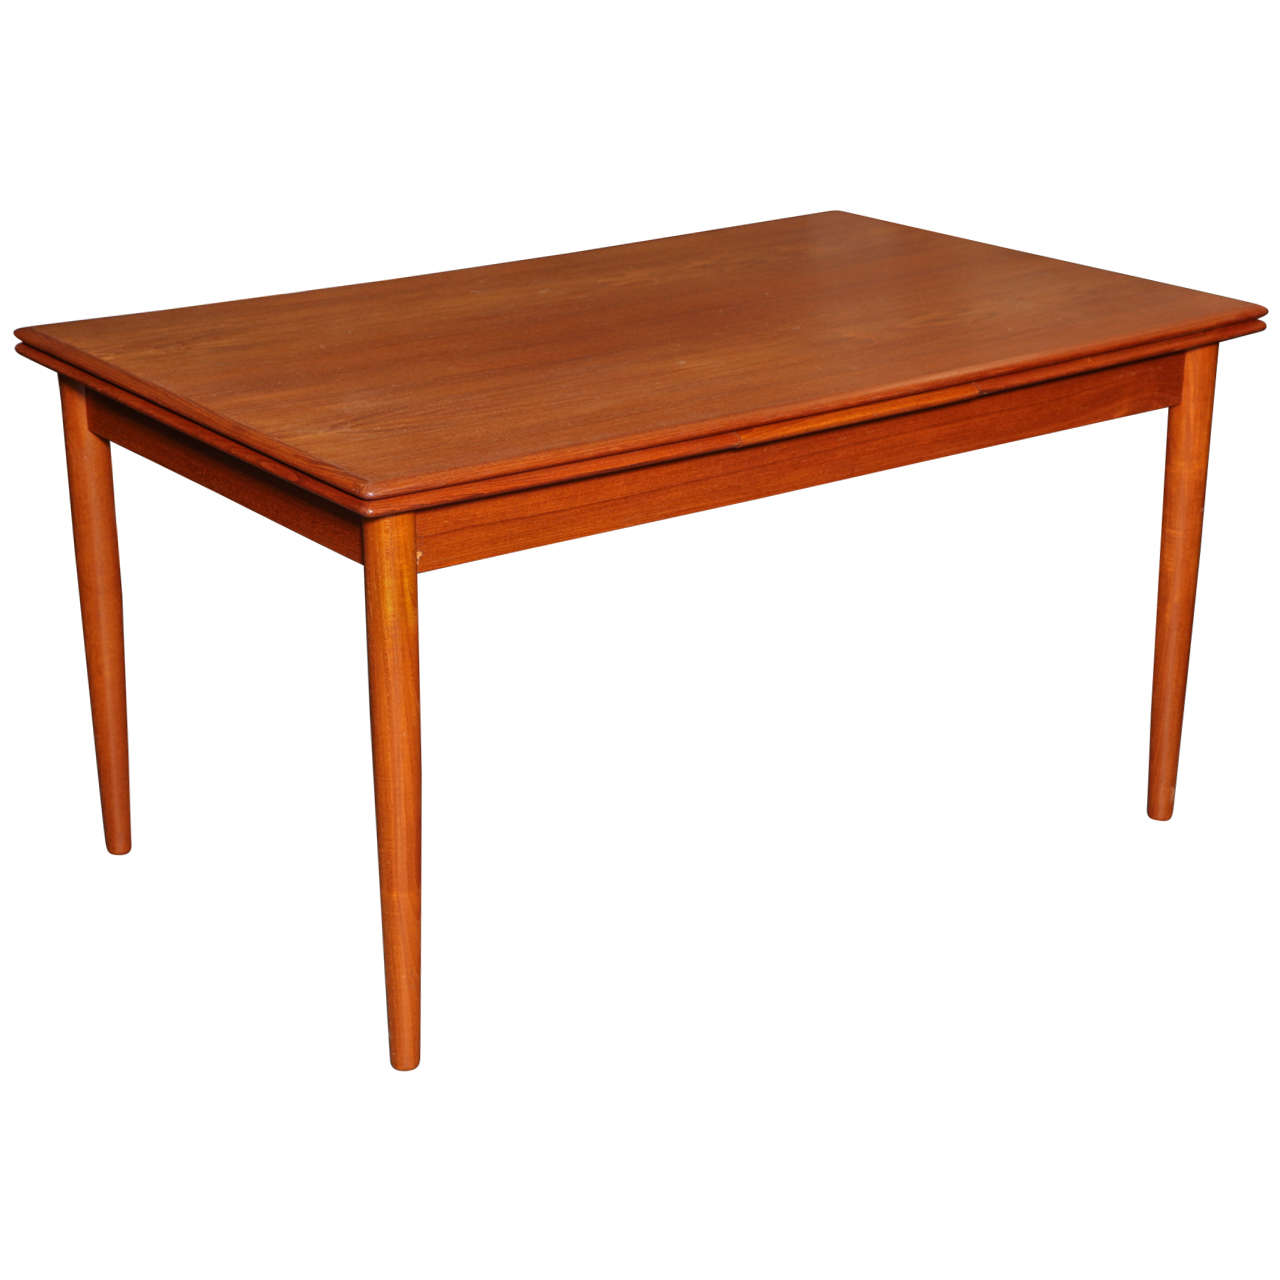 Danish modern dining table in teak expandable at 1stdibs - Modern table ...